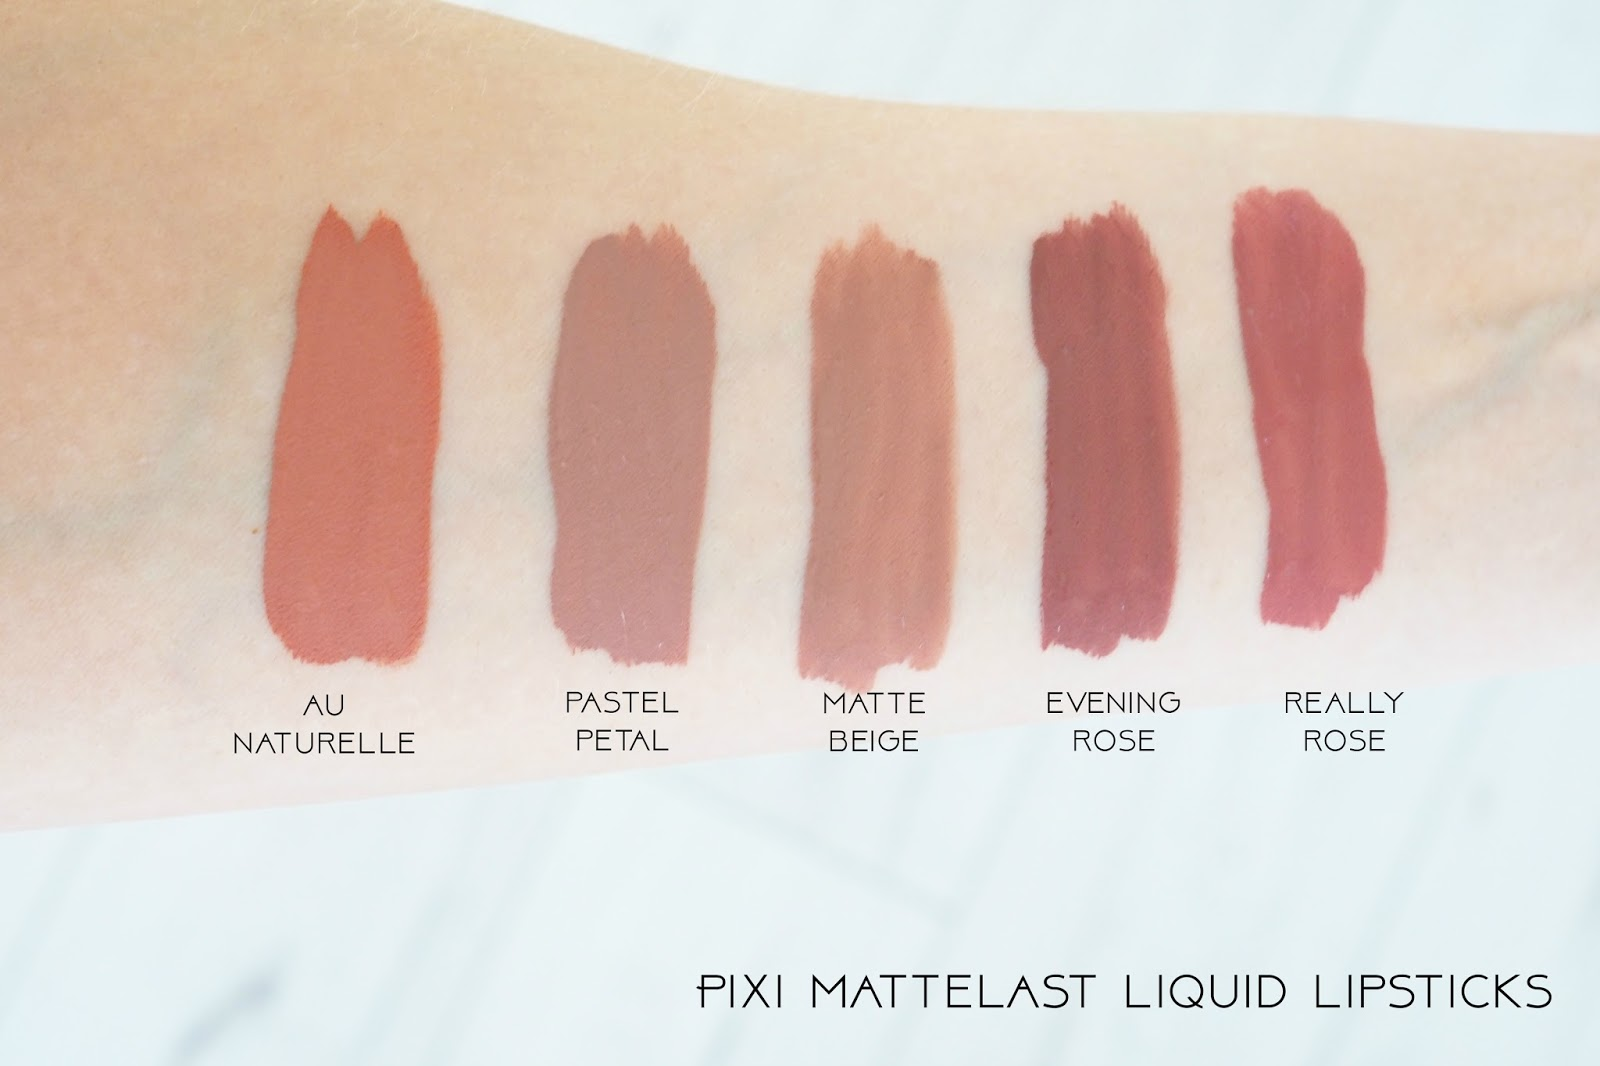 PIXI MatteLast Liquid Lipstick swatches in Pastel Petal, Matte Beige, Really Rose, Au Naturelle and Evening Rose